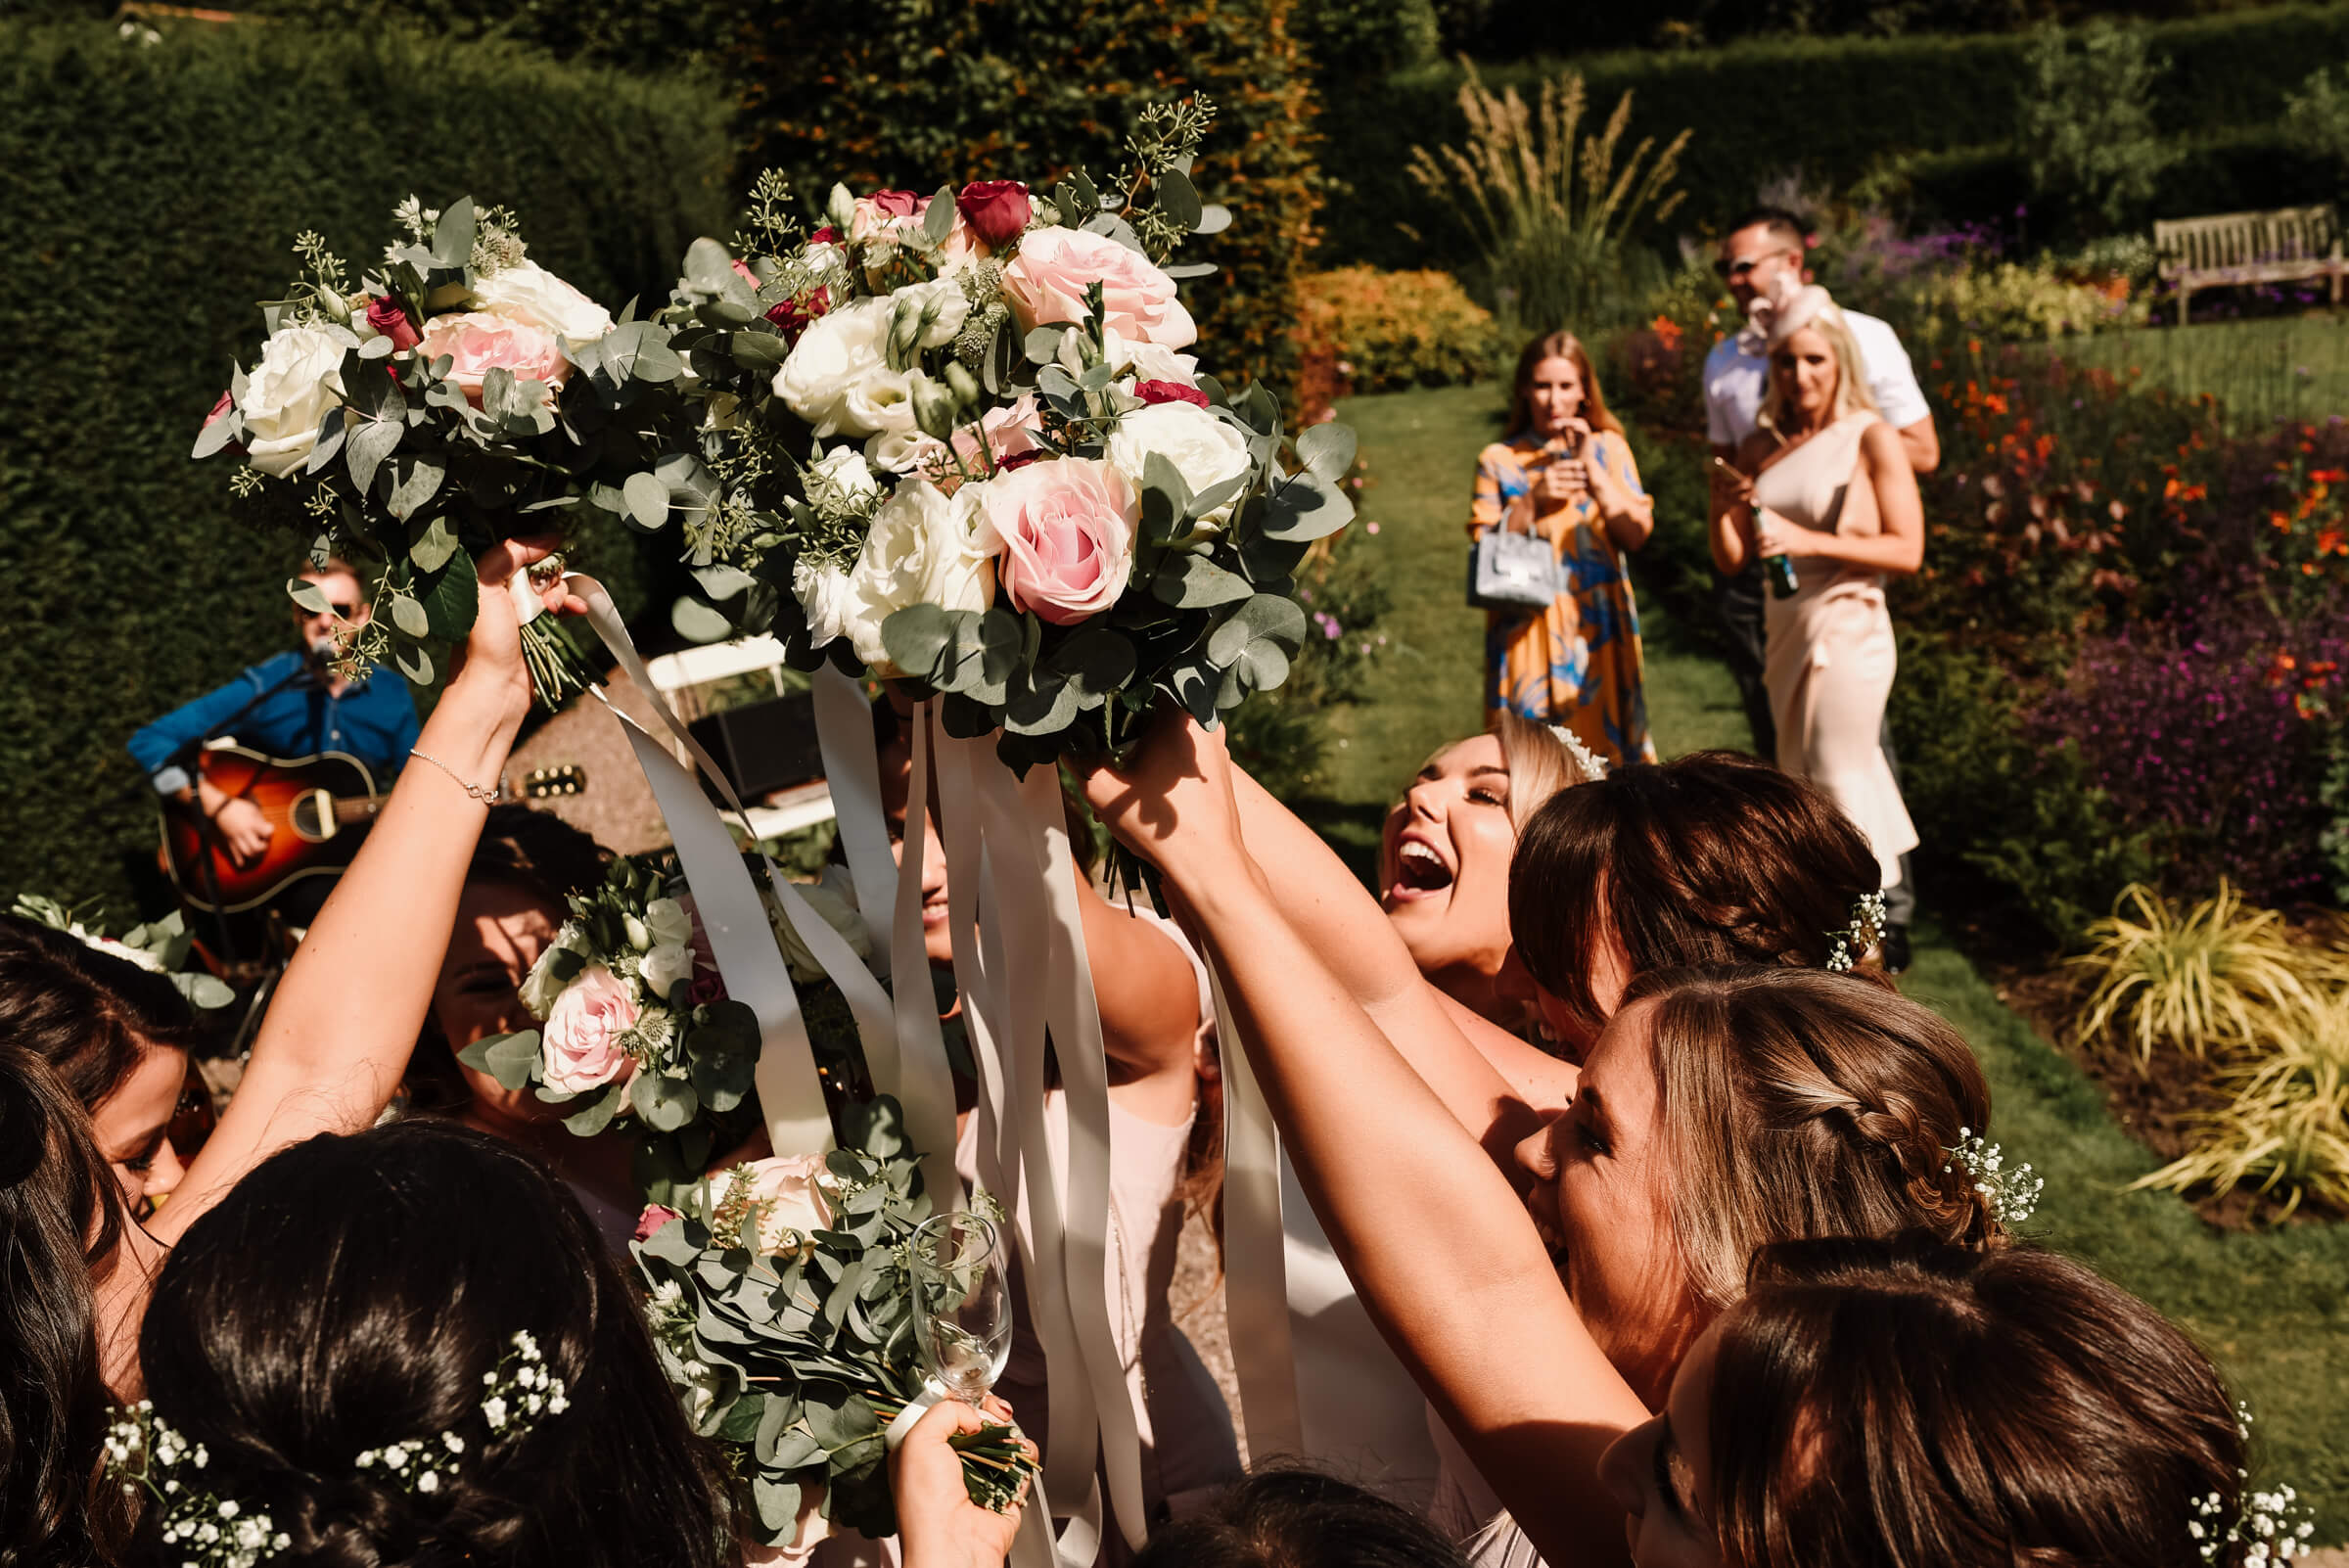 bride and bridesmaids holding bouquets in air and cheering